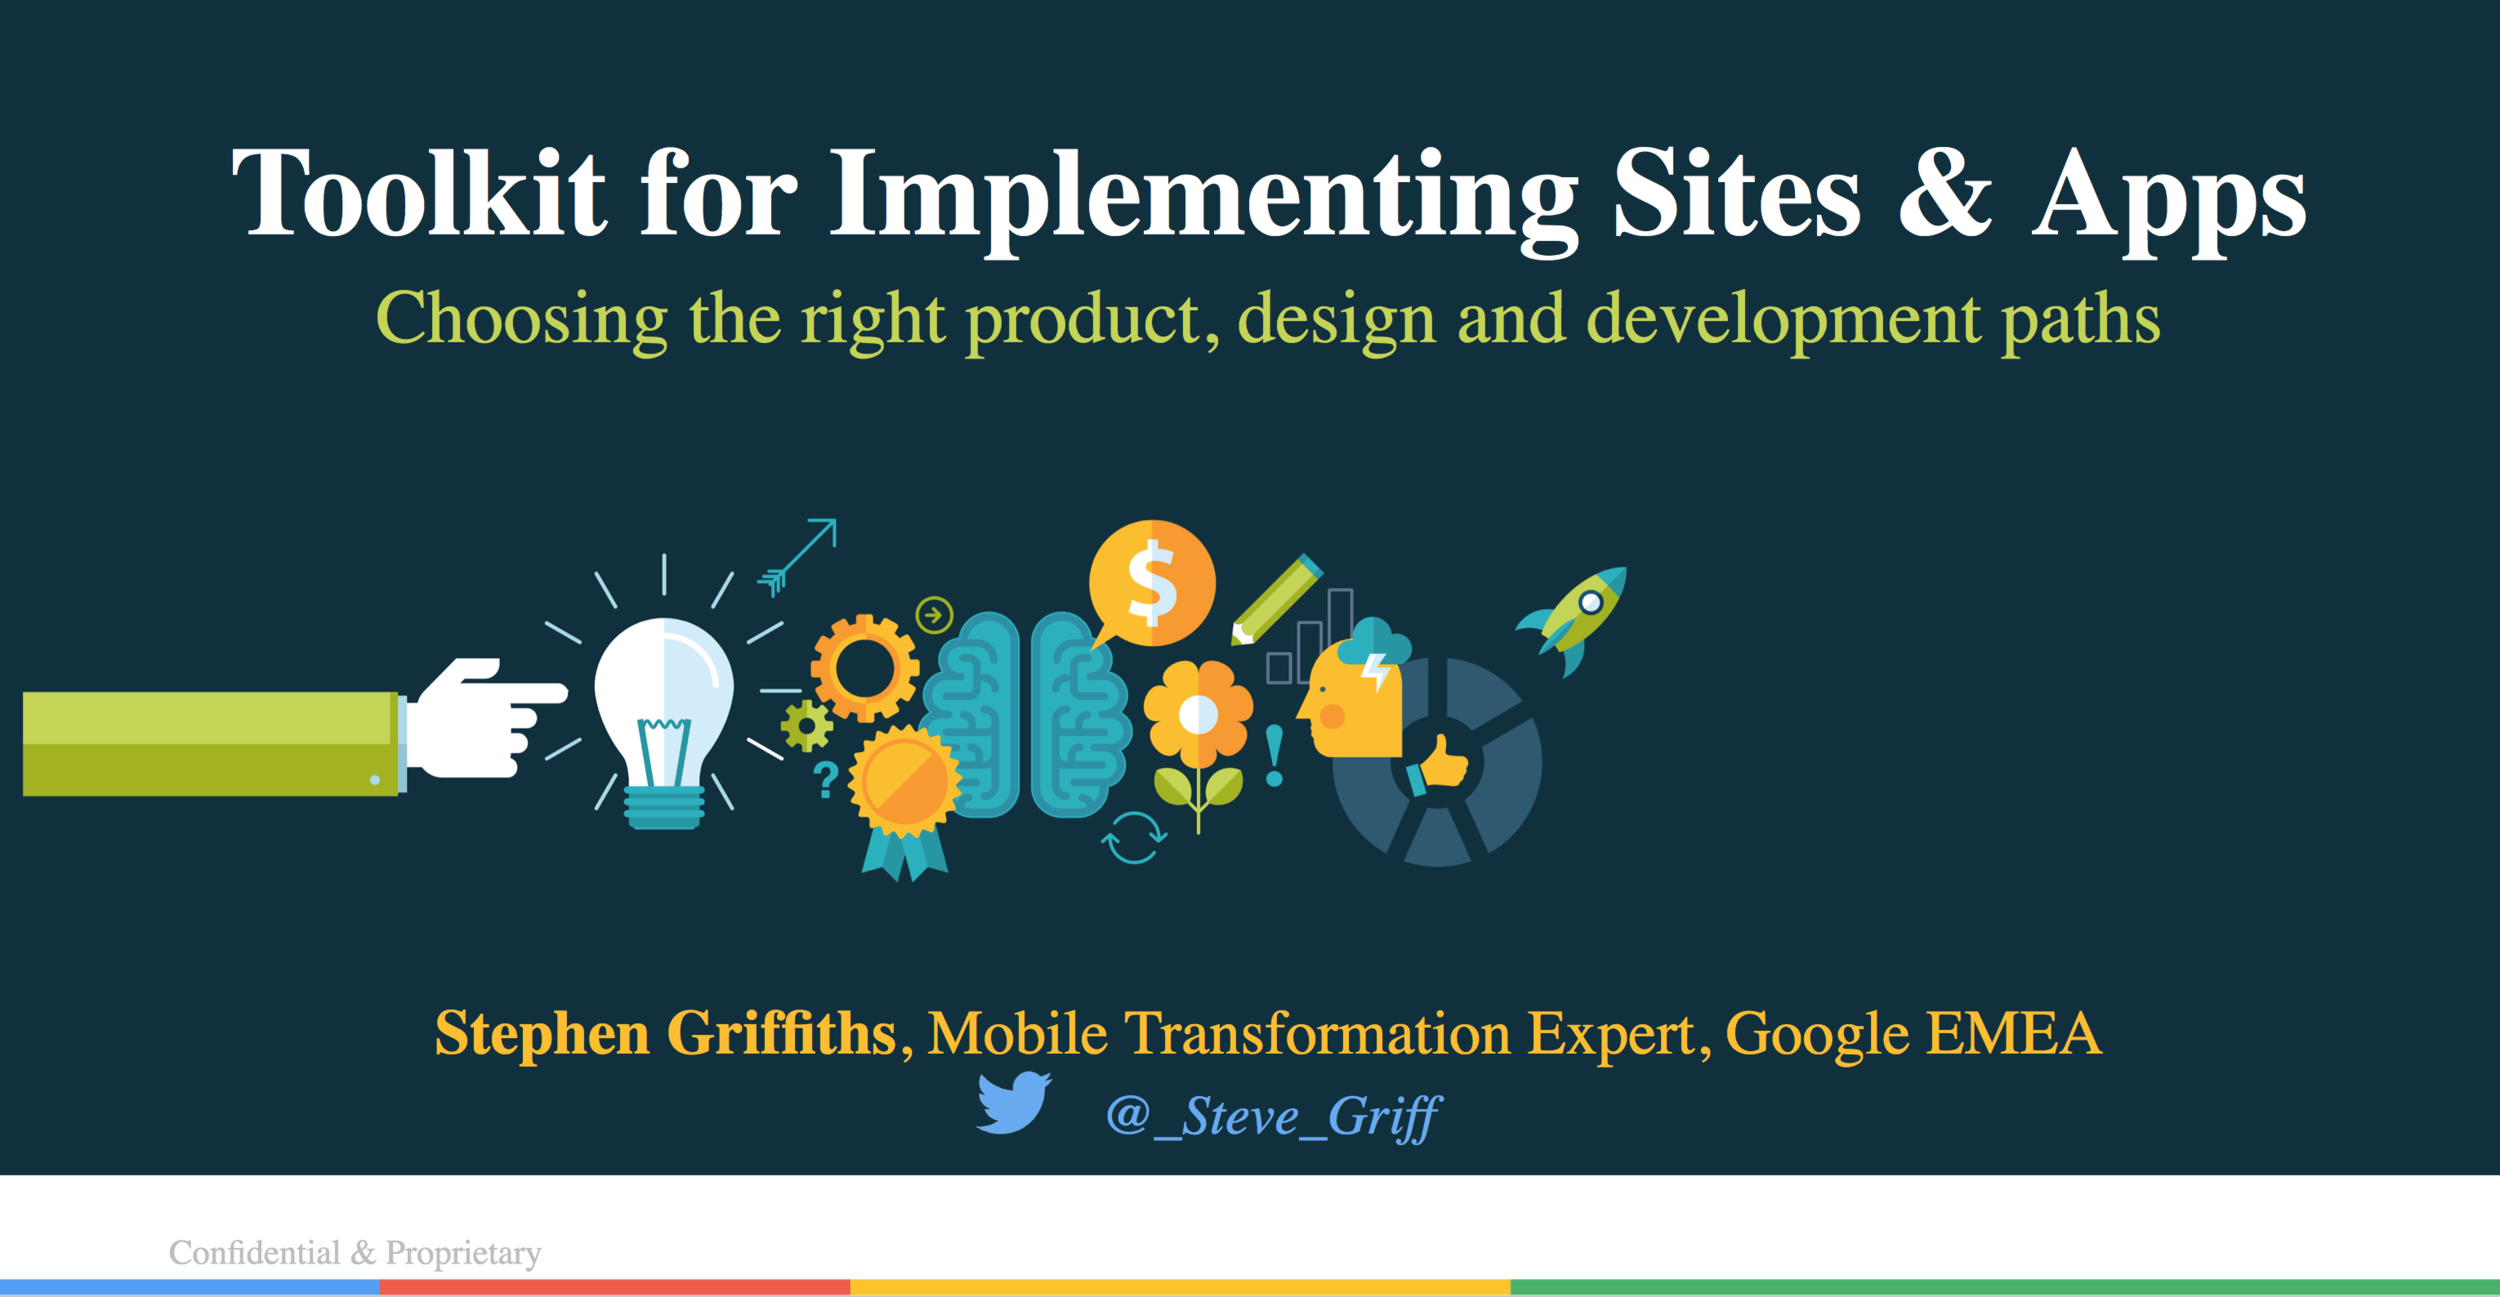 Toolkit for Implementing Websites & Mobile Apps